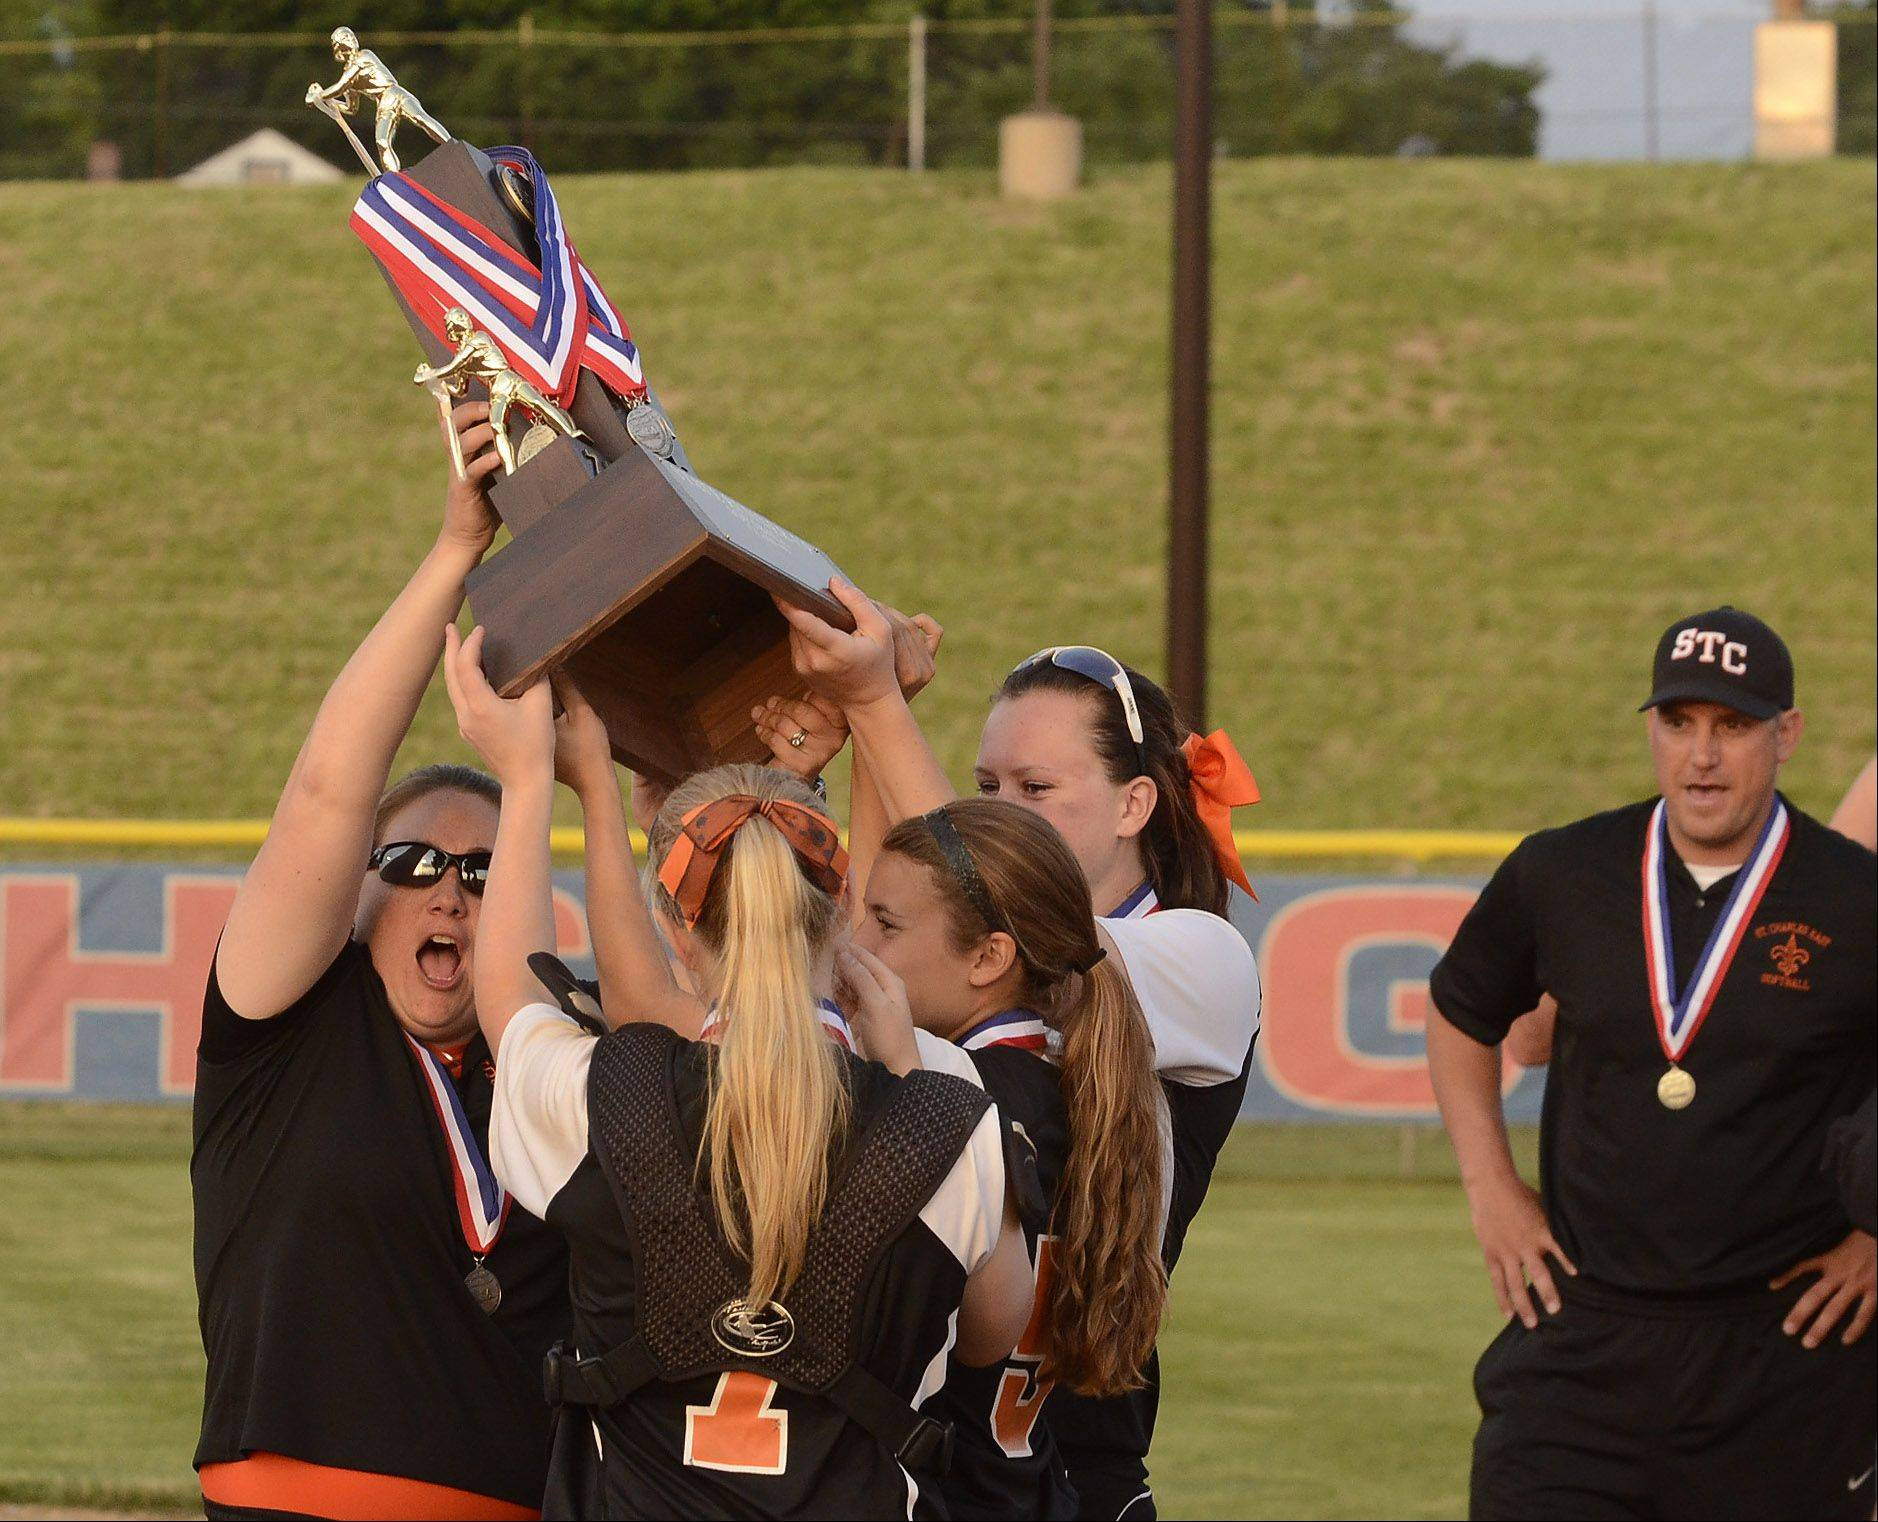 St. Charles East players hoist their 2nd place trophy after losing to Minooka in the Class 4A softball championship game.